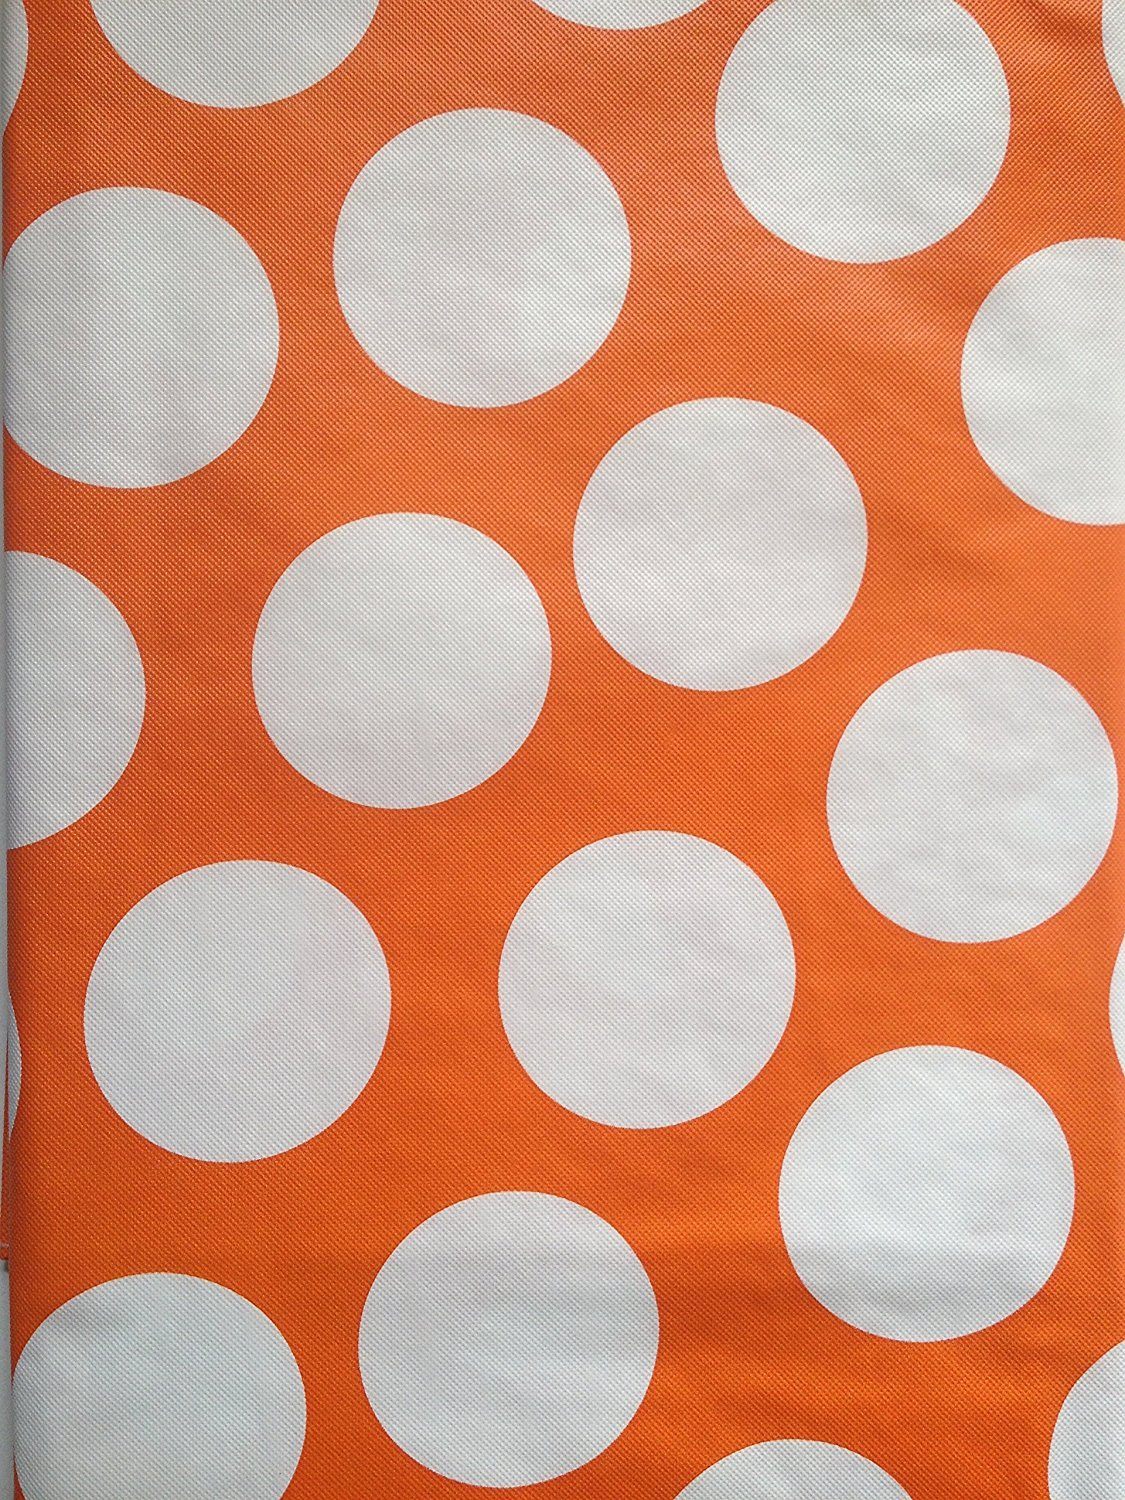 Orange and White Polka Dot Assorted Sizes 60 Round Summer Fun Flannel Back Vinyl Tablecloths